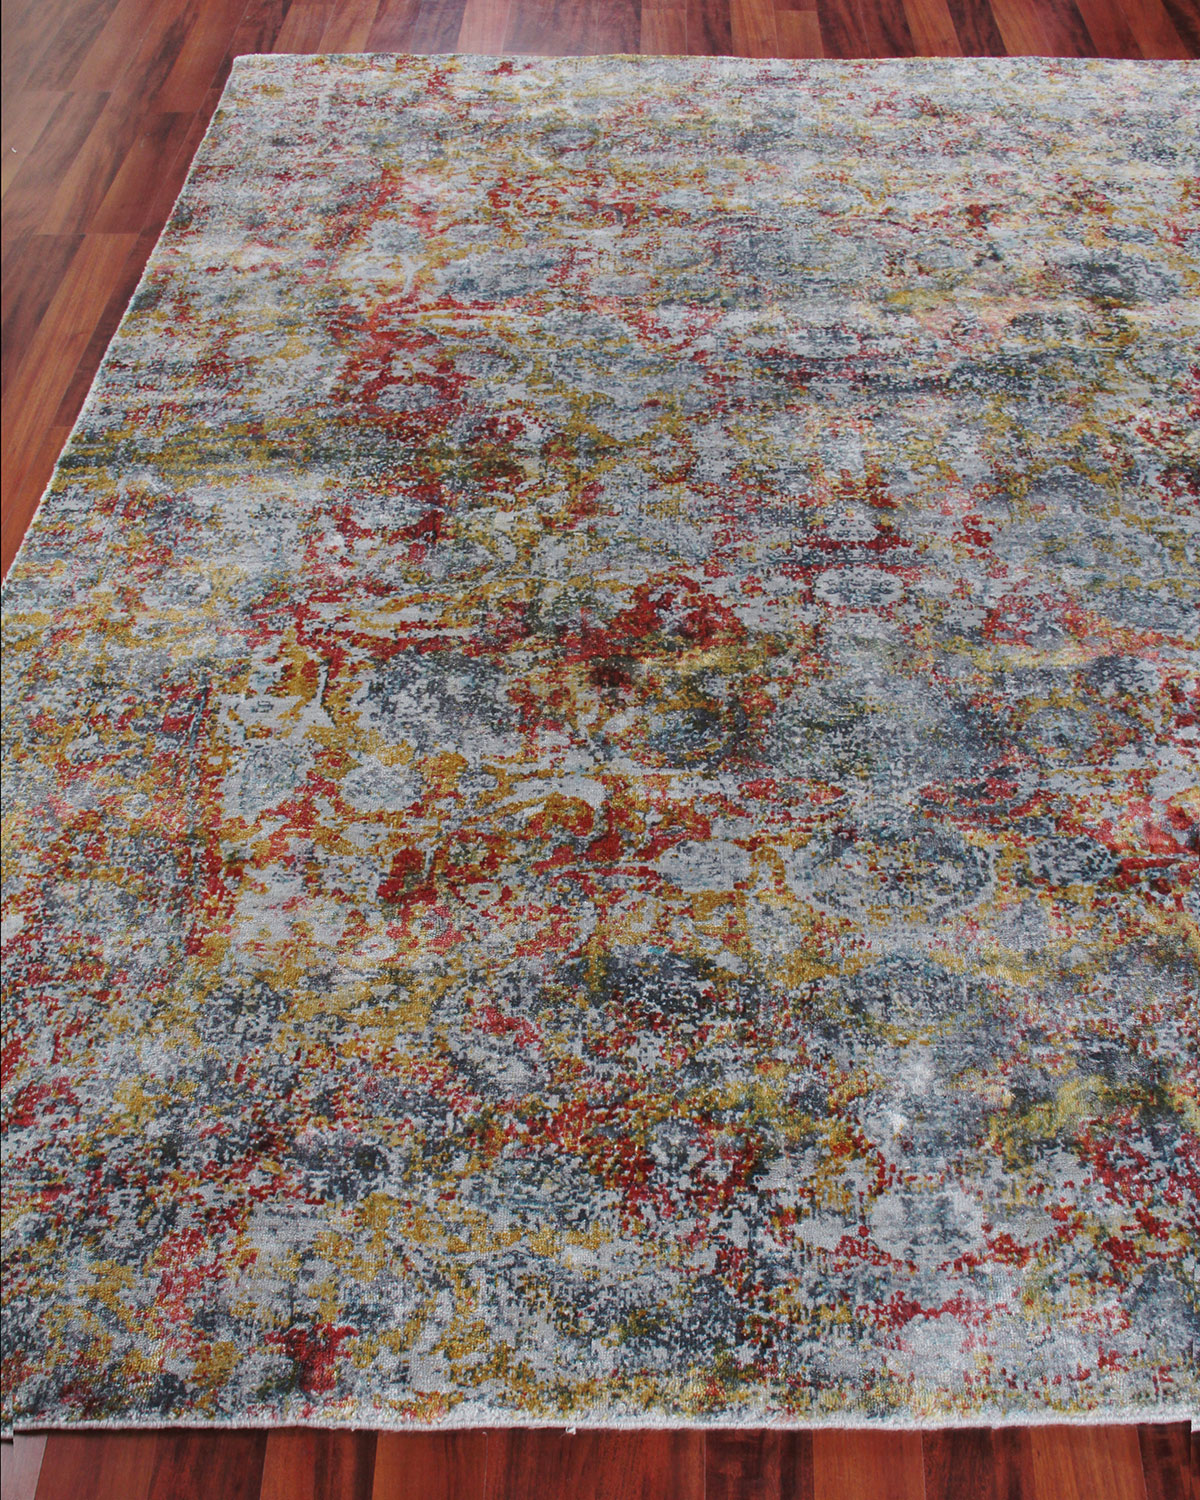 Exquisite Rugs Grissim Hand Knotted Area Rug 10 X 14 Neiman Marcus